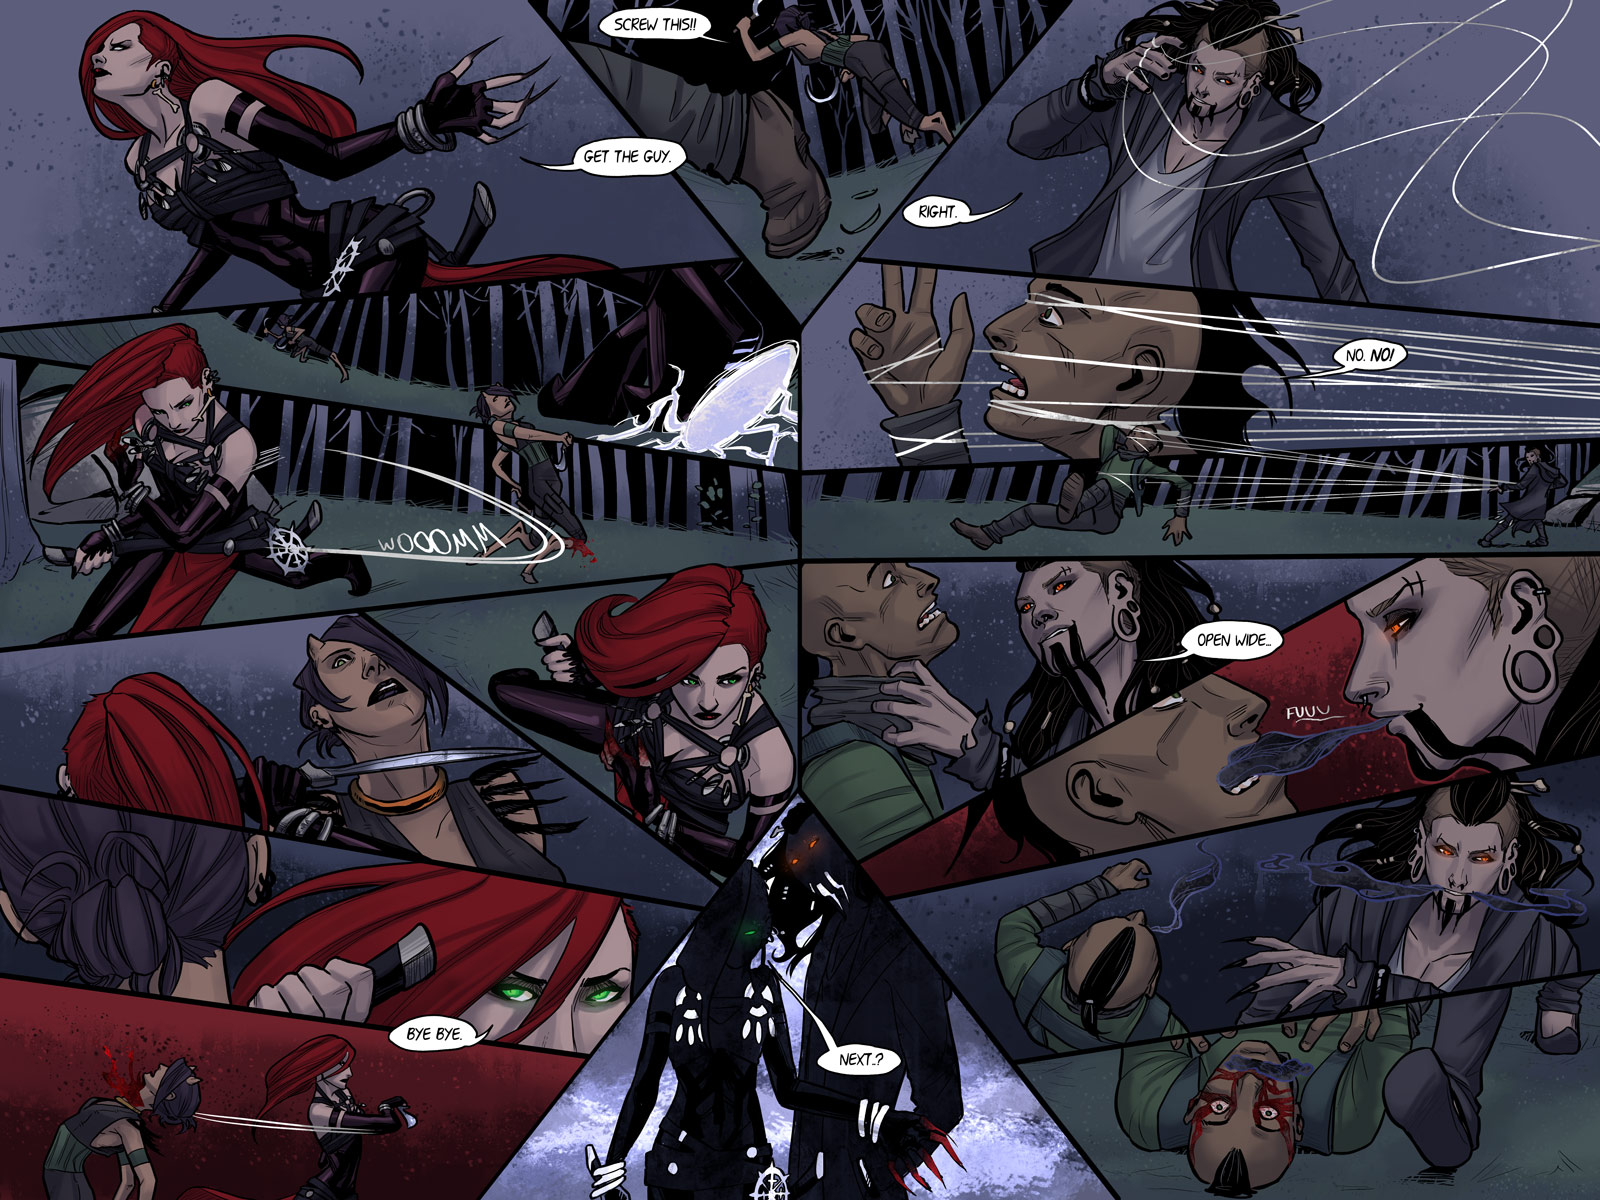 Chapter 2 pages 5-6